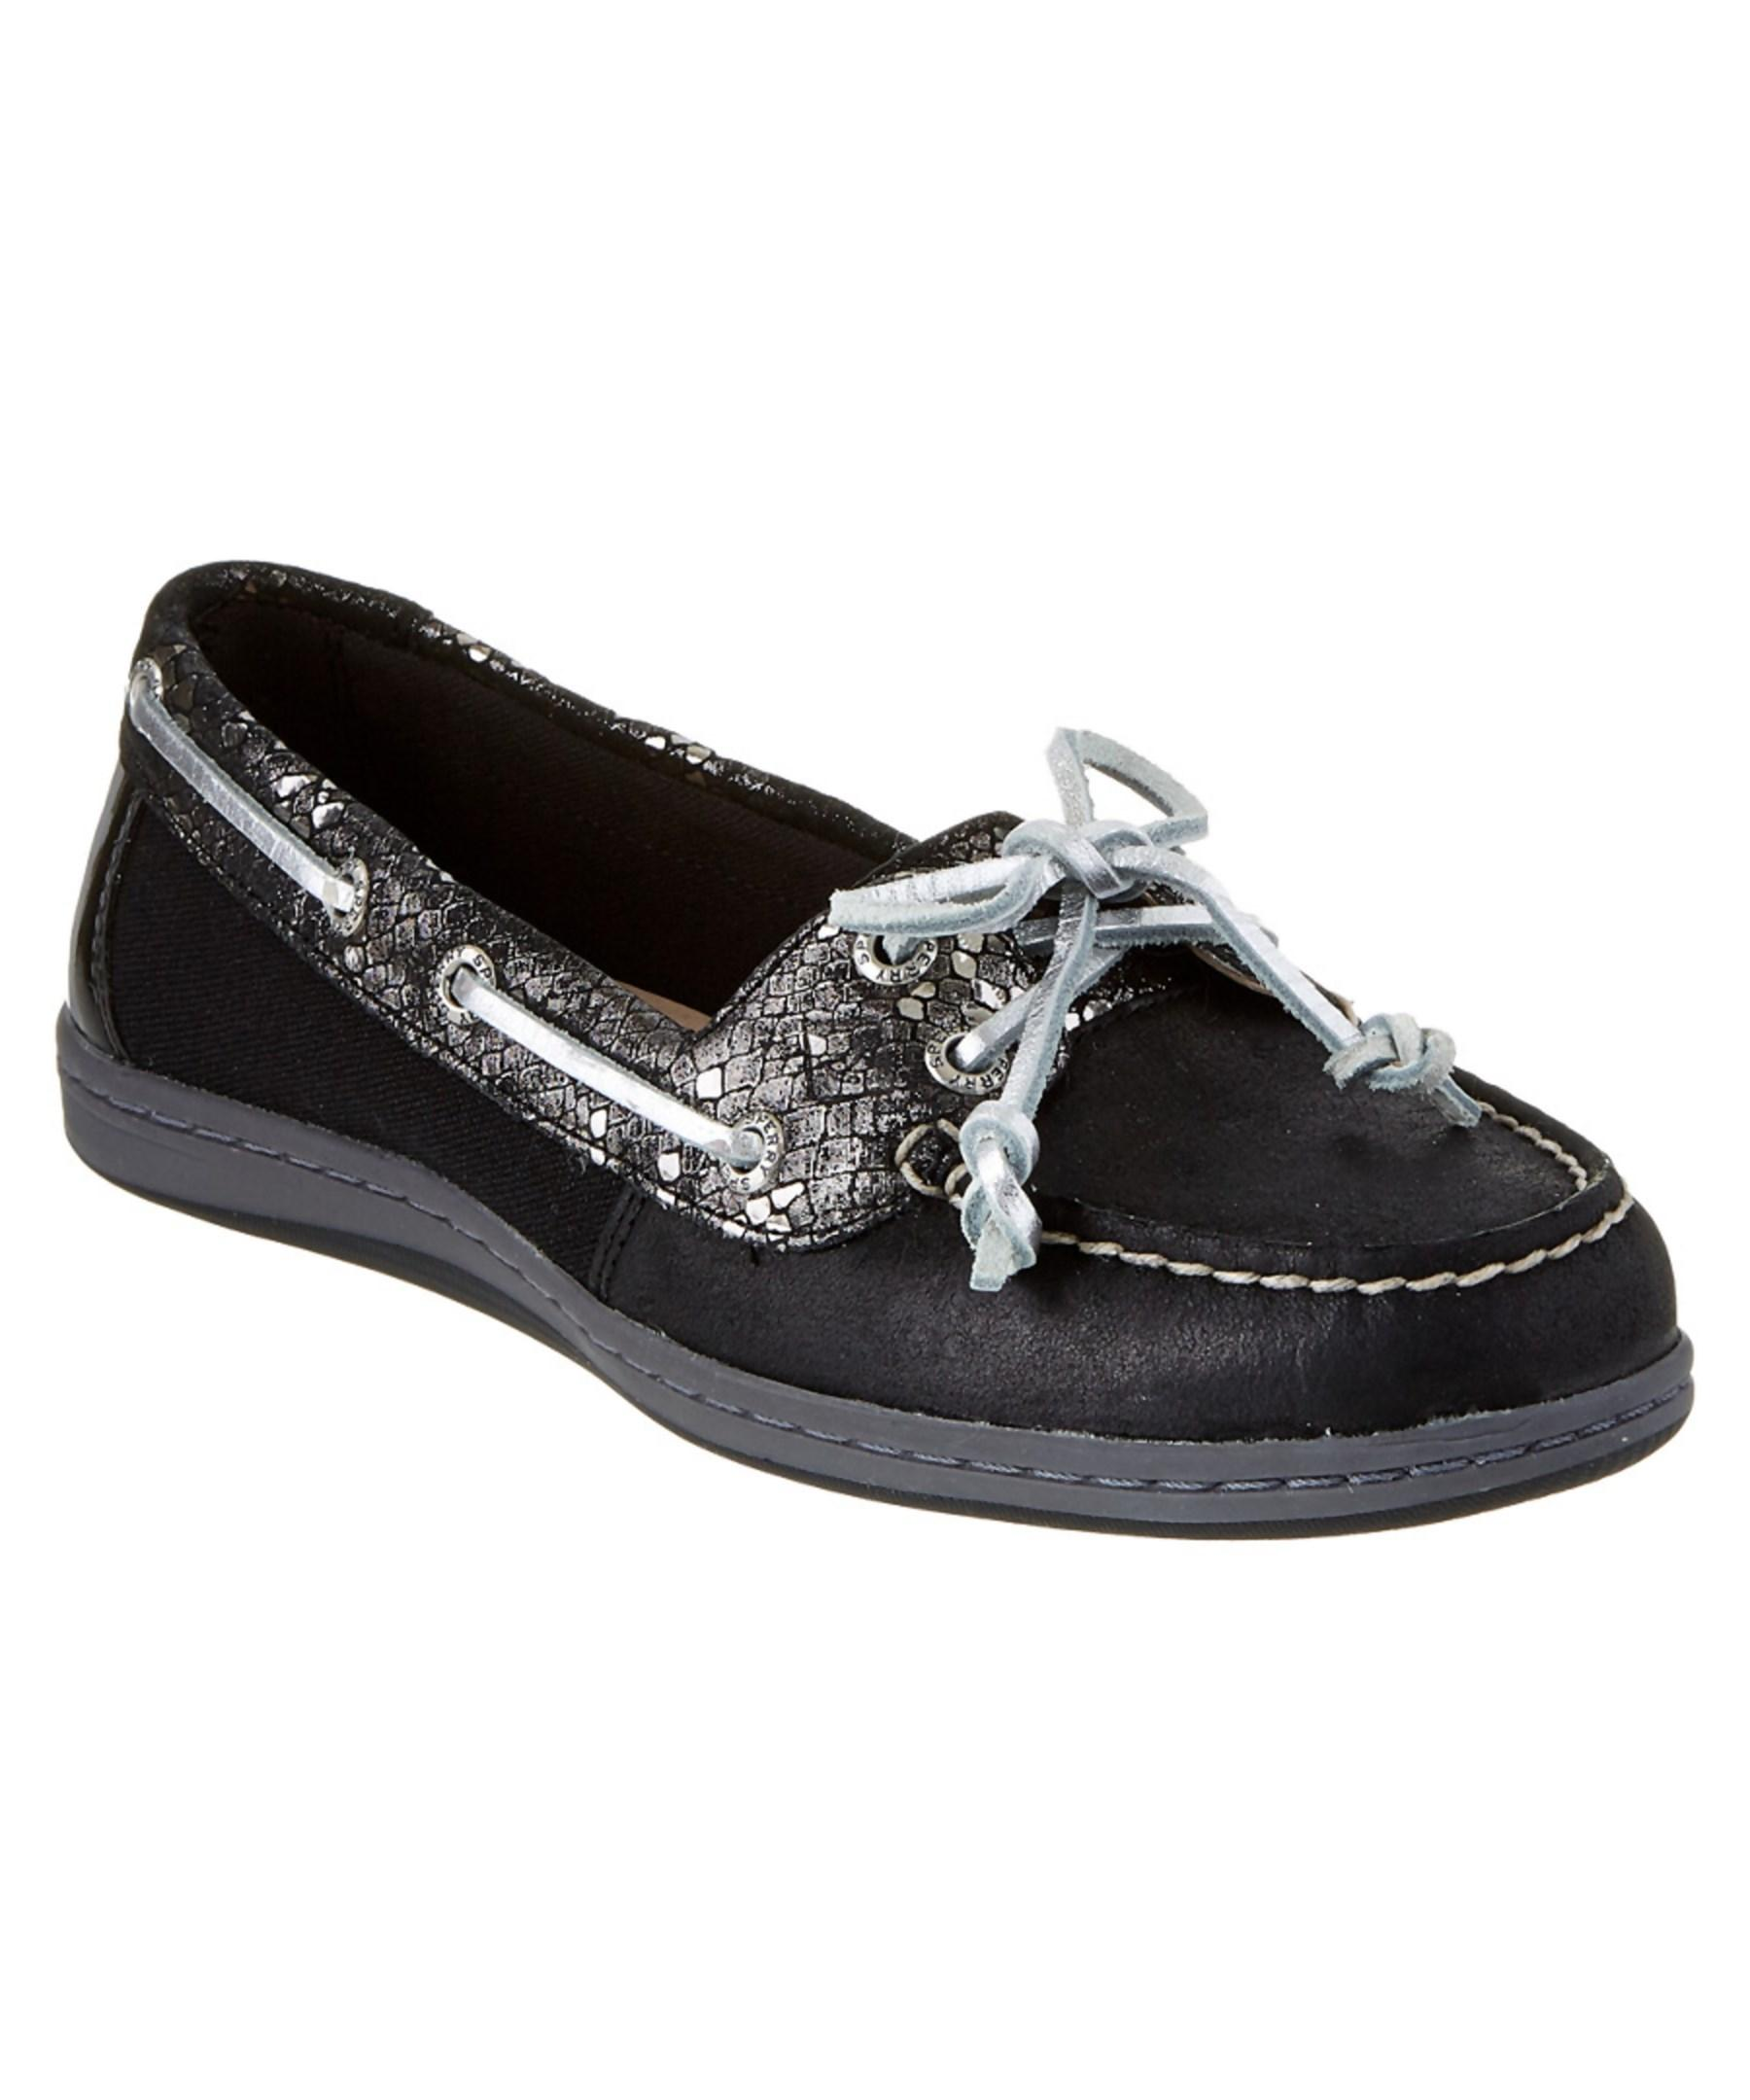 Sperry top-sider Firefish Leather Boat Shoe in Black